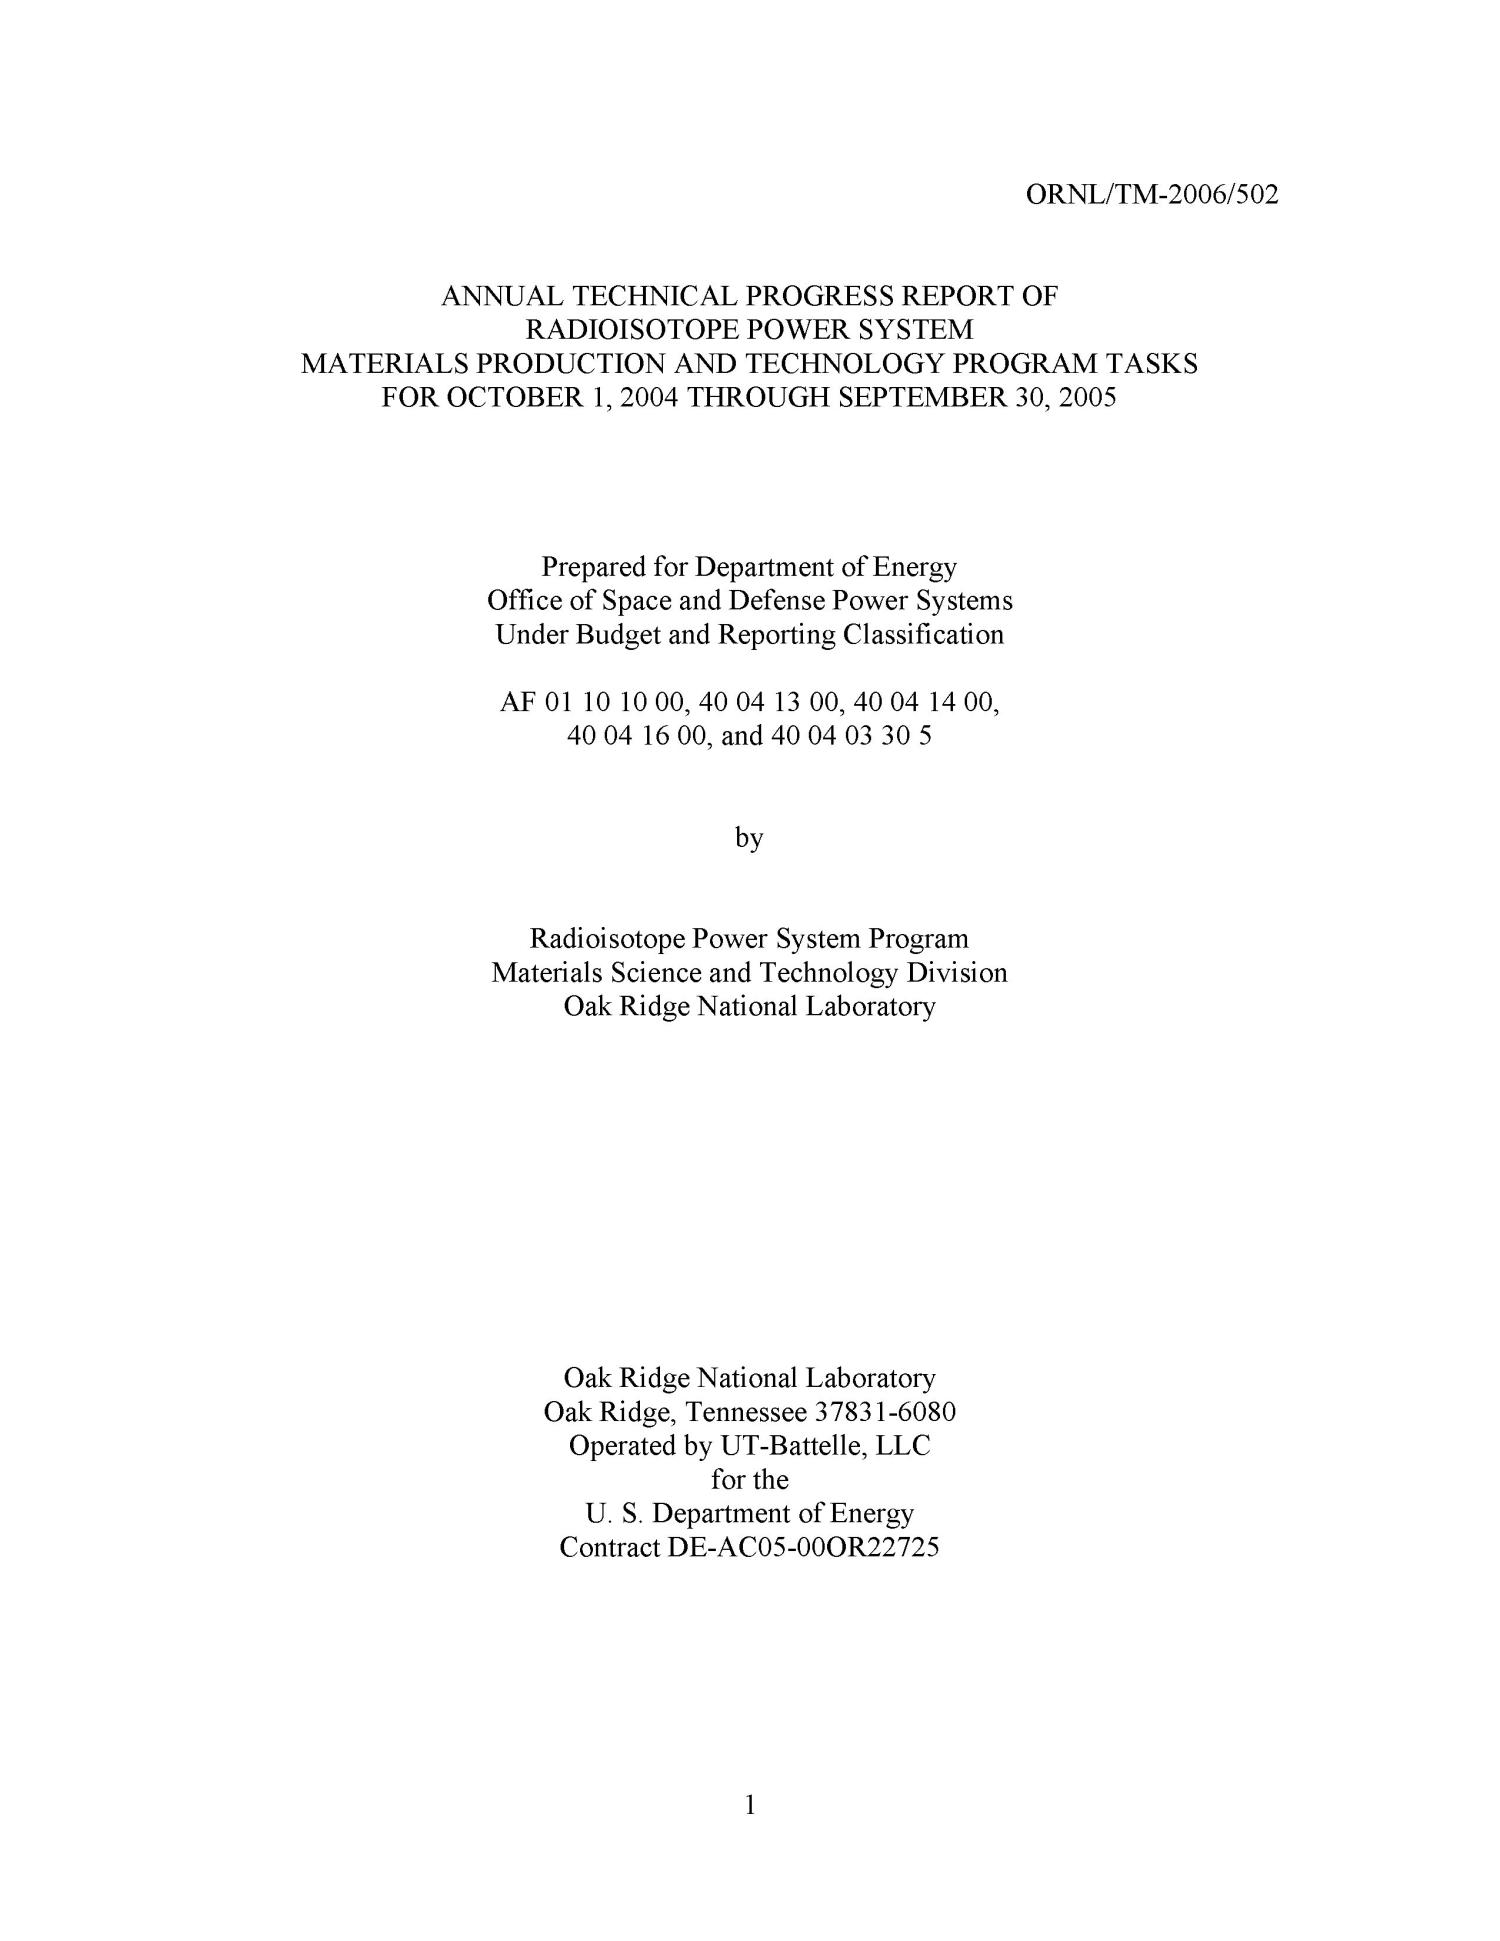 Annual Technical Progress Report of Radioisotope Power System Materials Production and Technology Program Tasks for October 1, 2004, Through September 30, 2005                                                                                                      [Sequence #]: 1 of 43